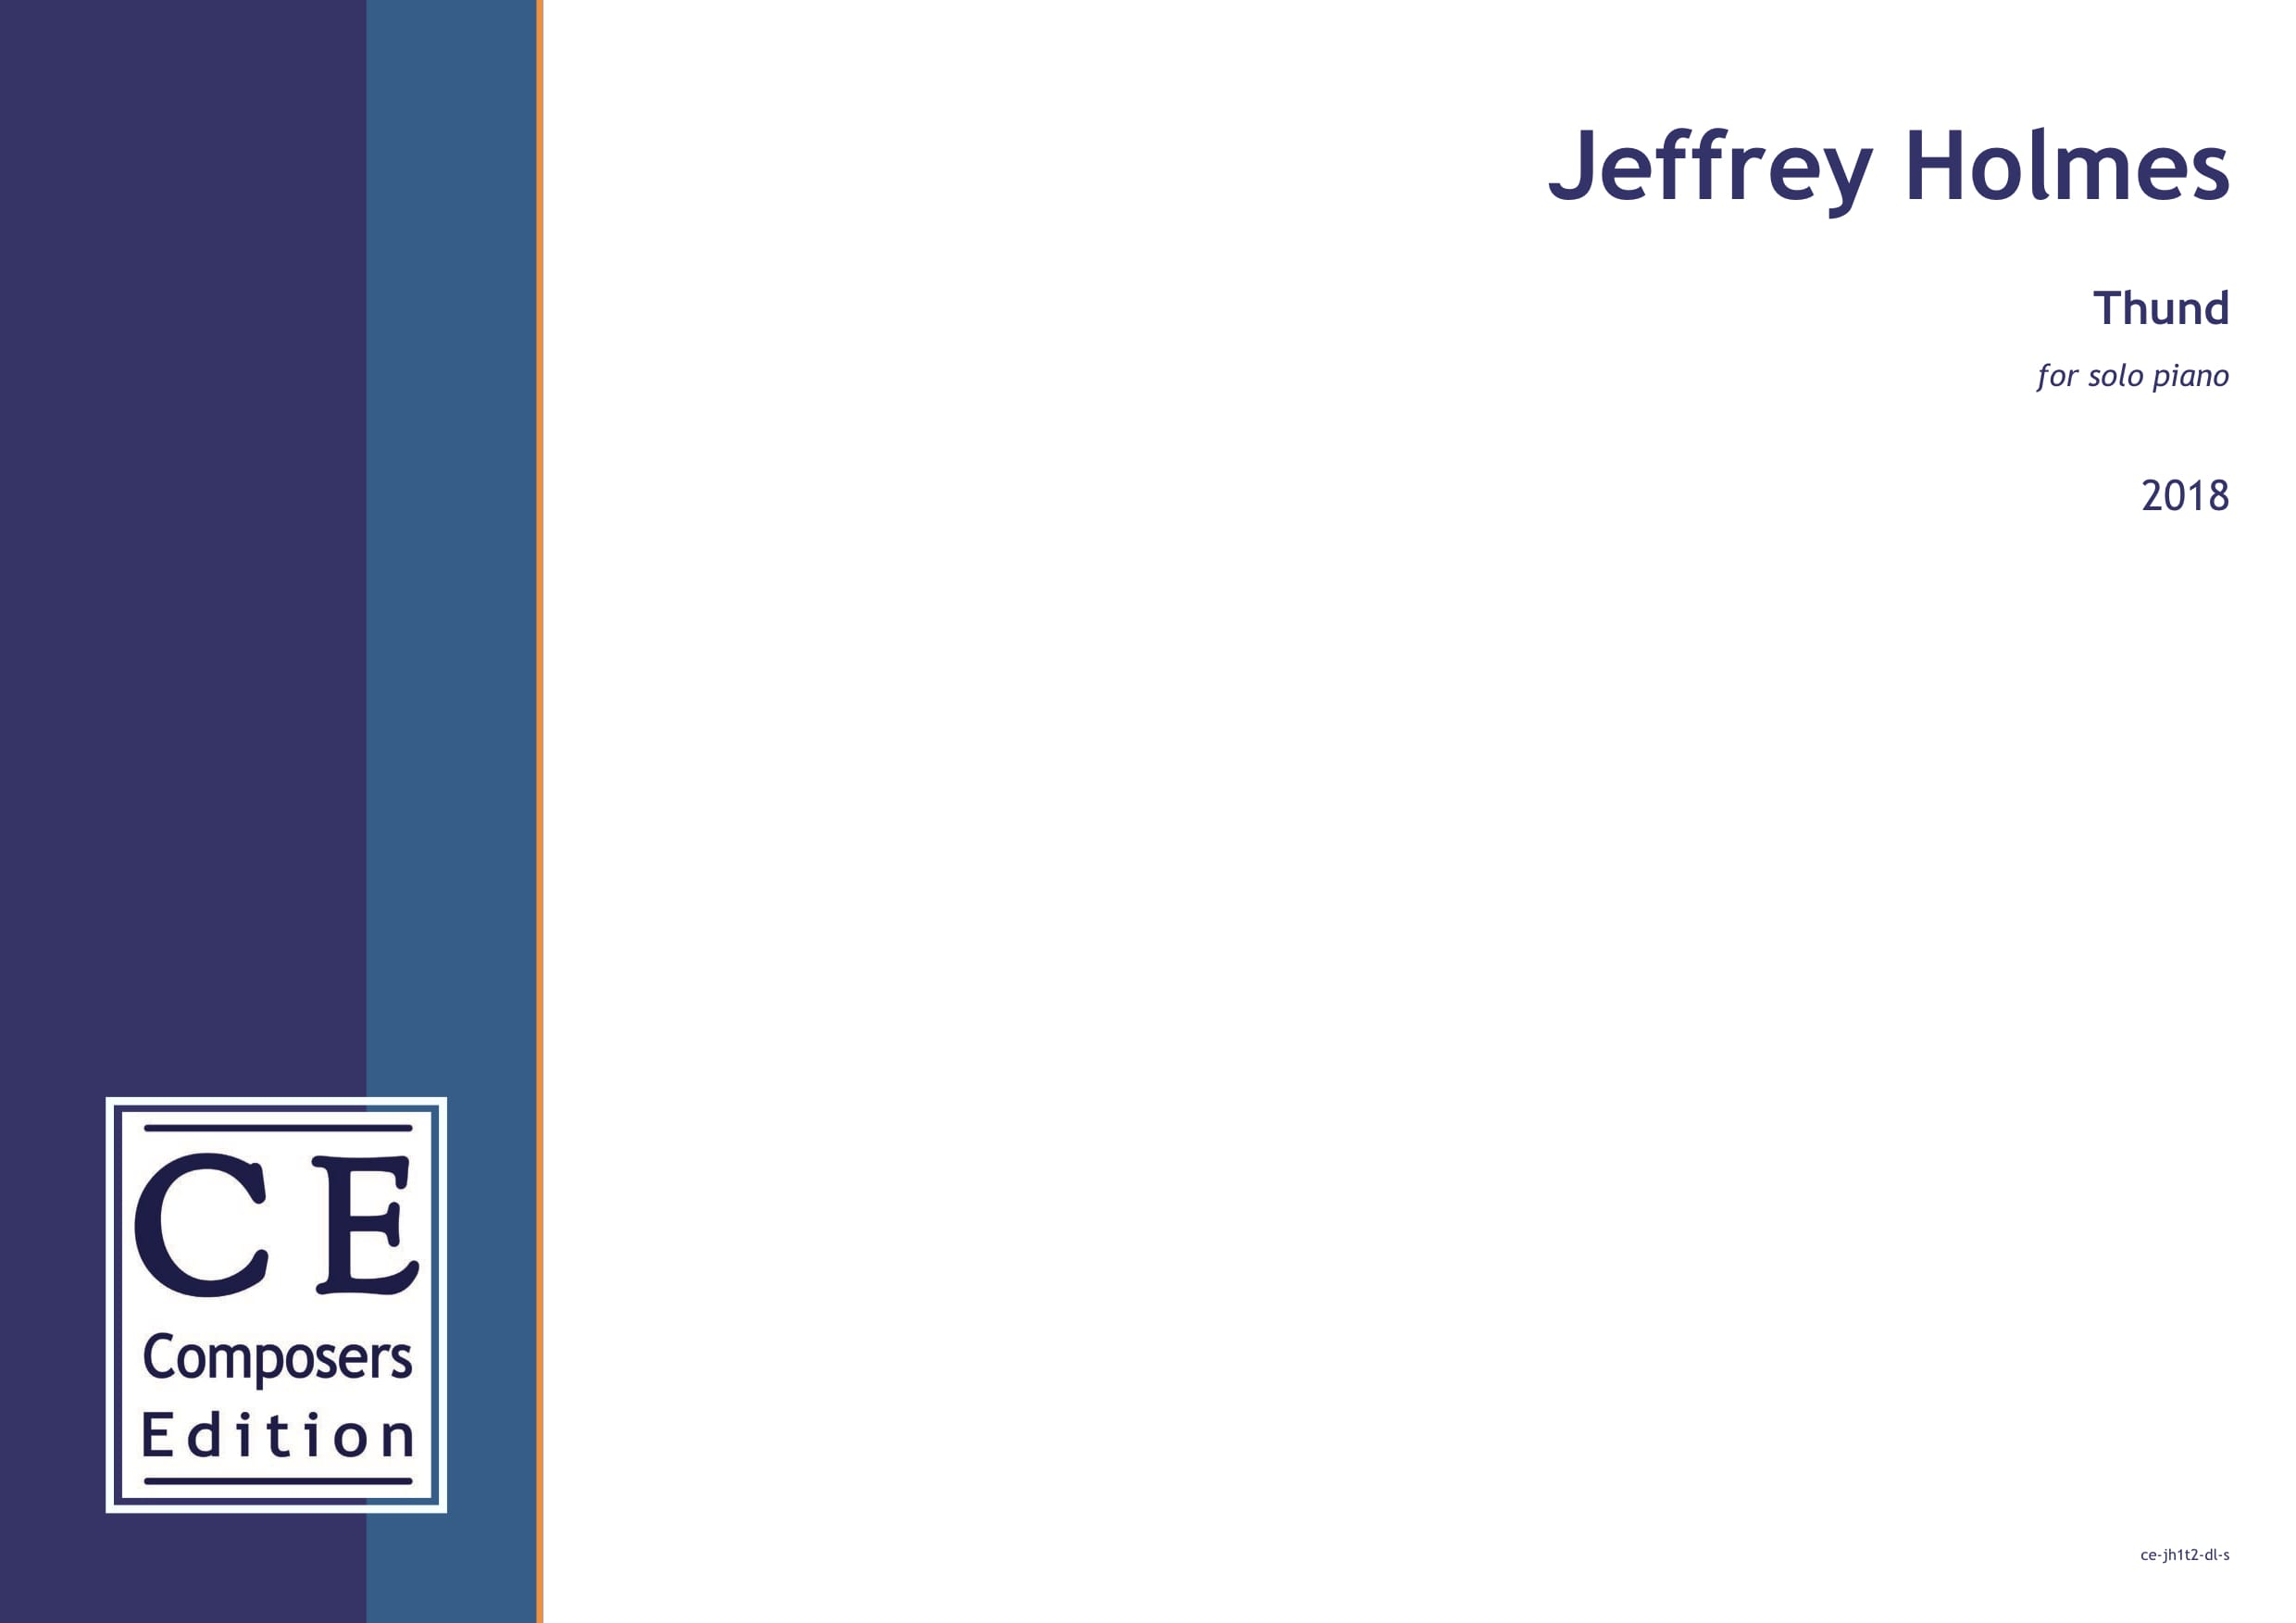 Jeffrey Holmes: Thund for solo piano